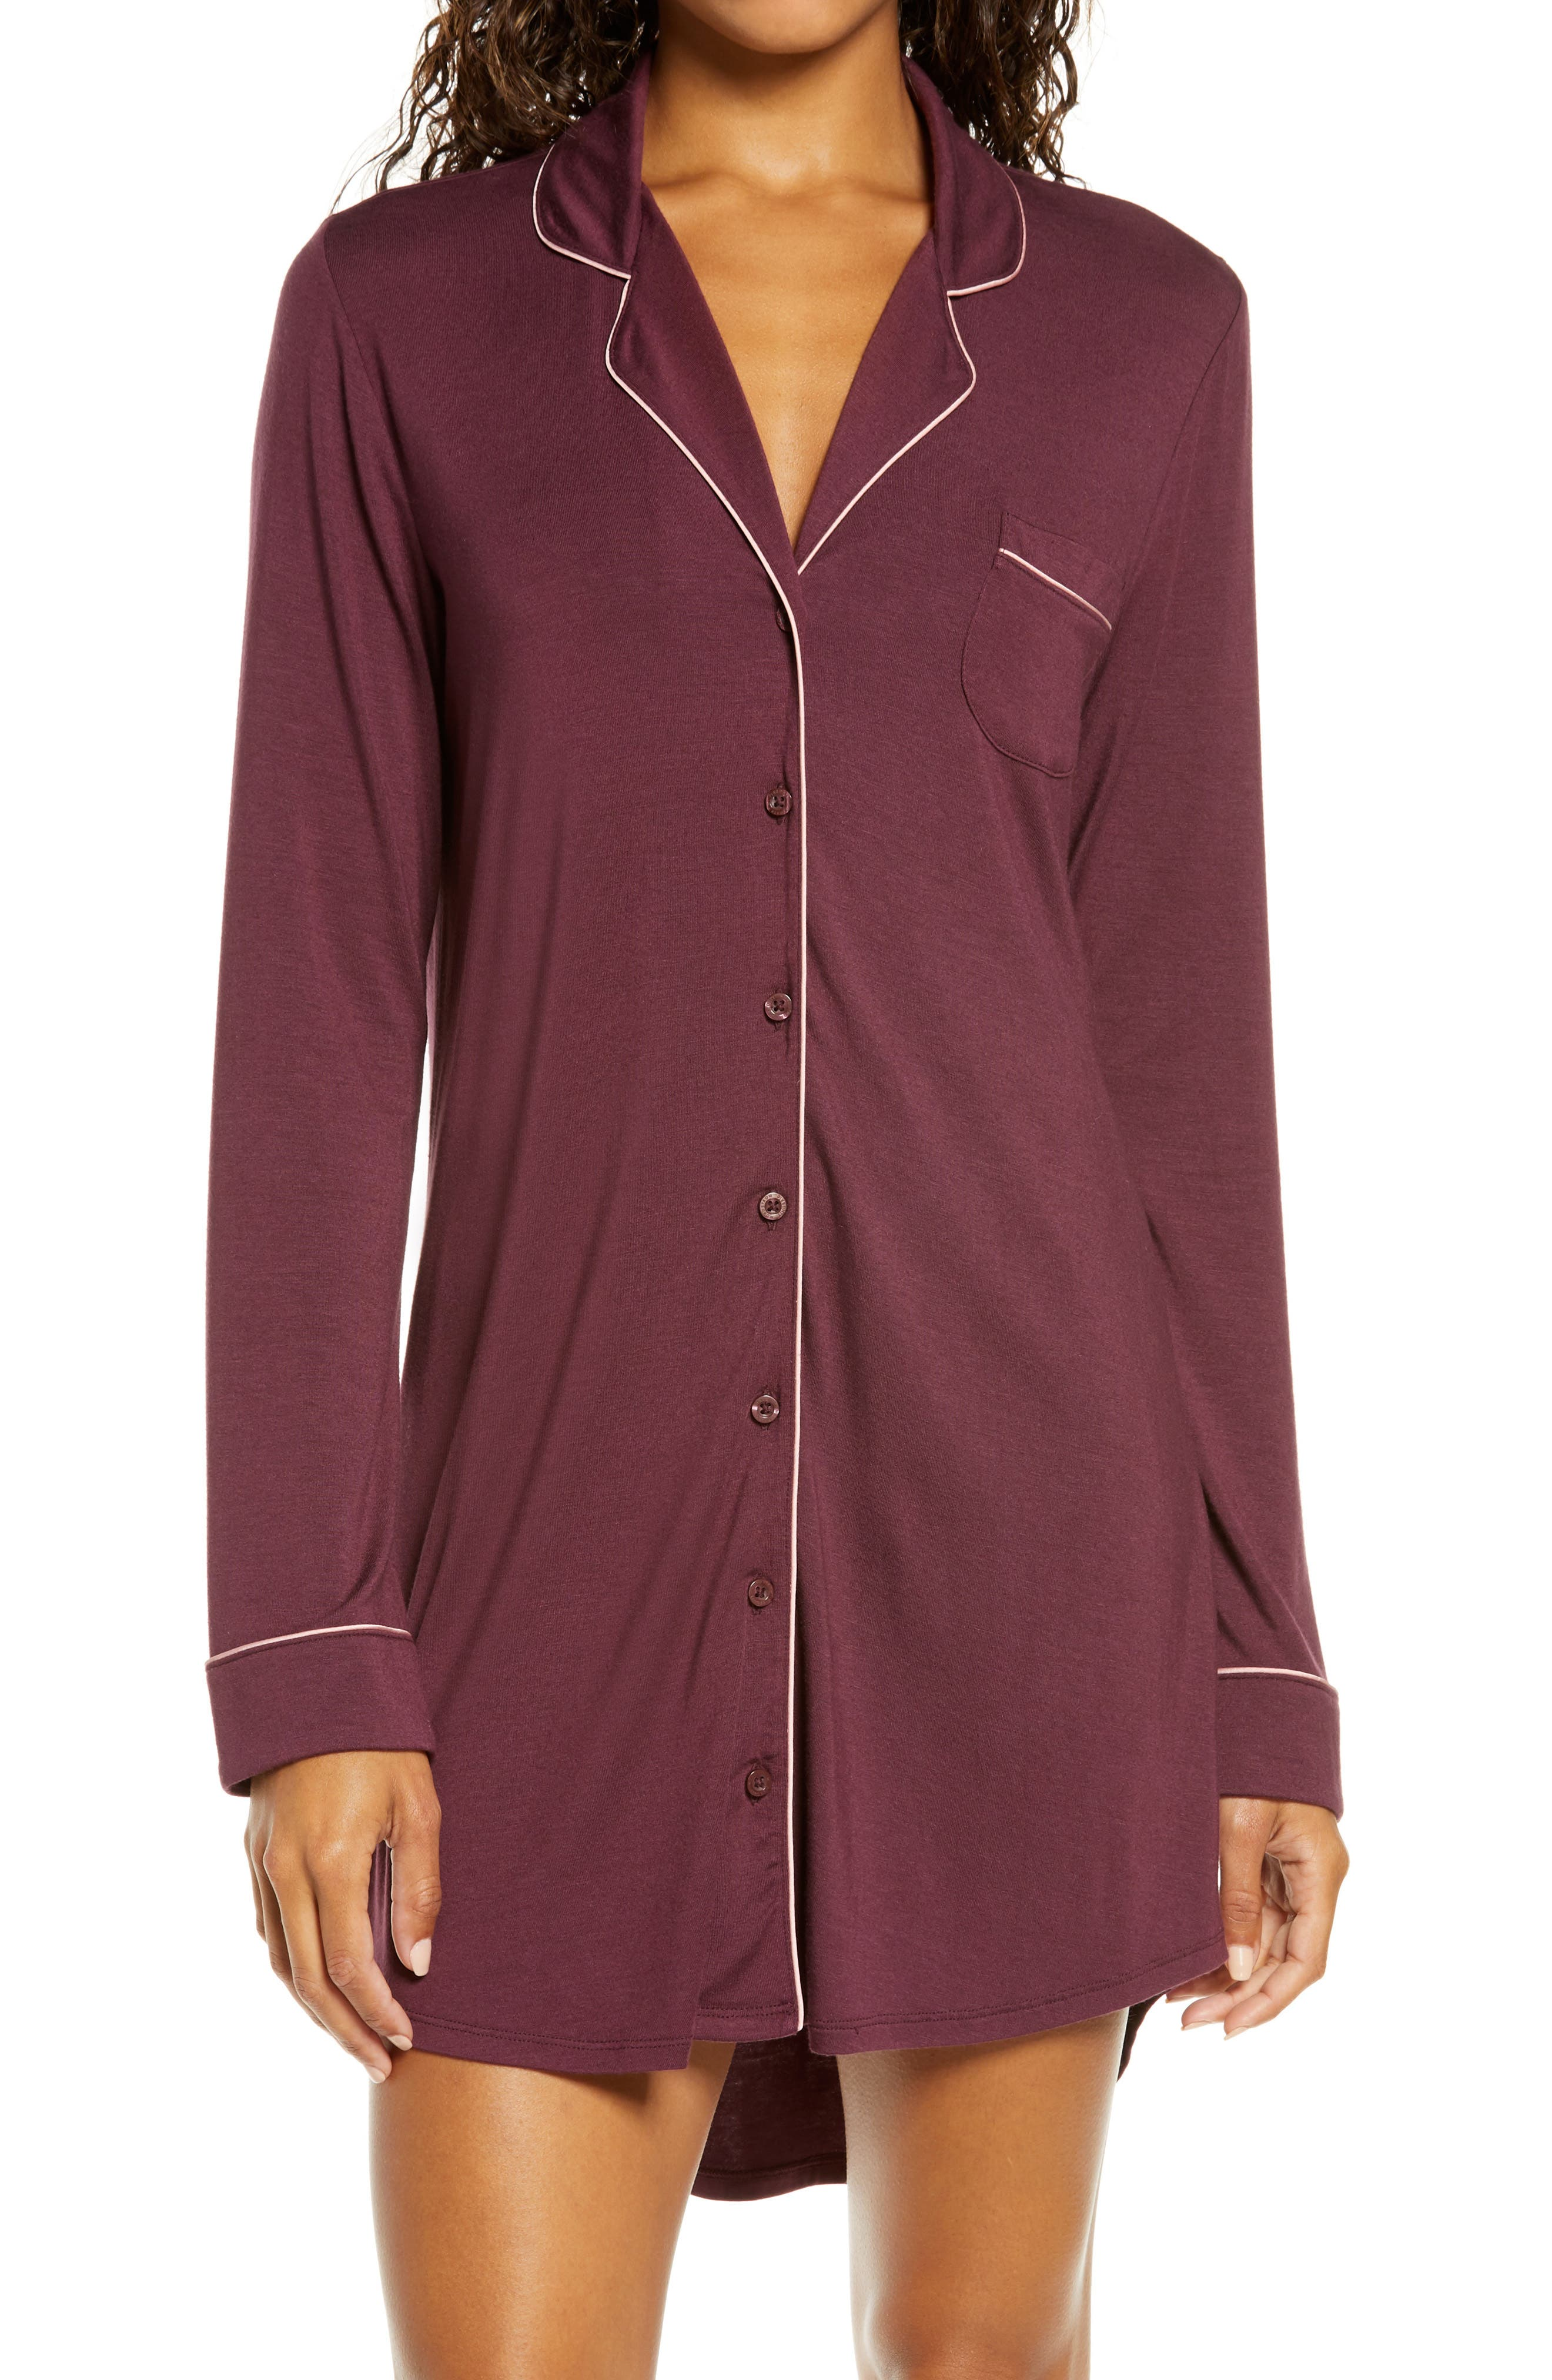 Traced with contrast piping for a classic finish, this soft and comfy sleep shirt is great for lounging, layering and, of course, sleeping. Style Name: Nordstrom Moonlight Dream Sleep Shirt. Style Number: 6000891. Available in stores.